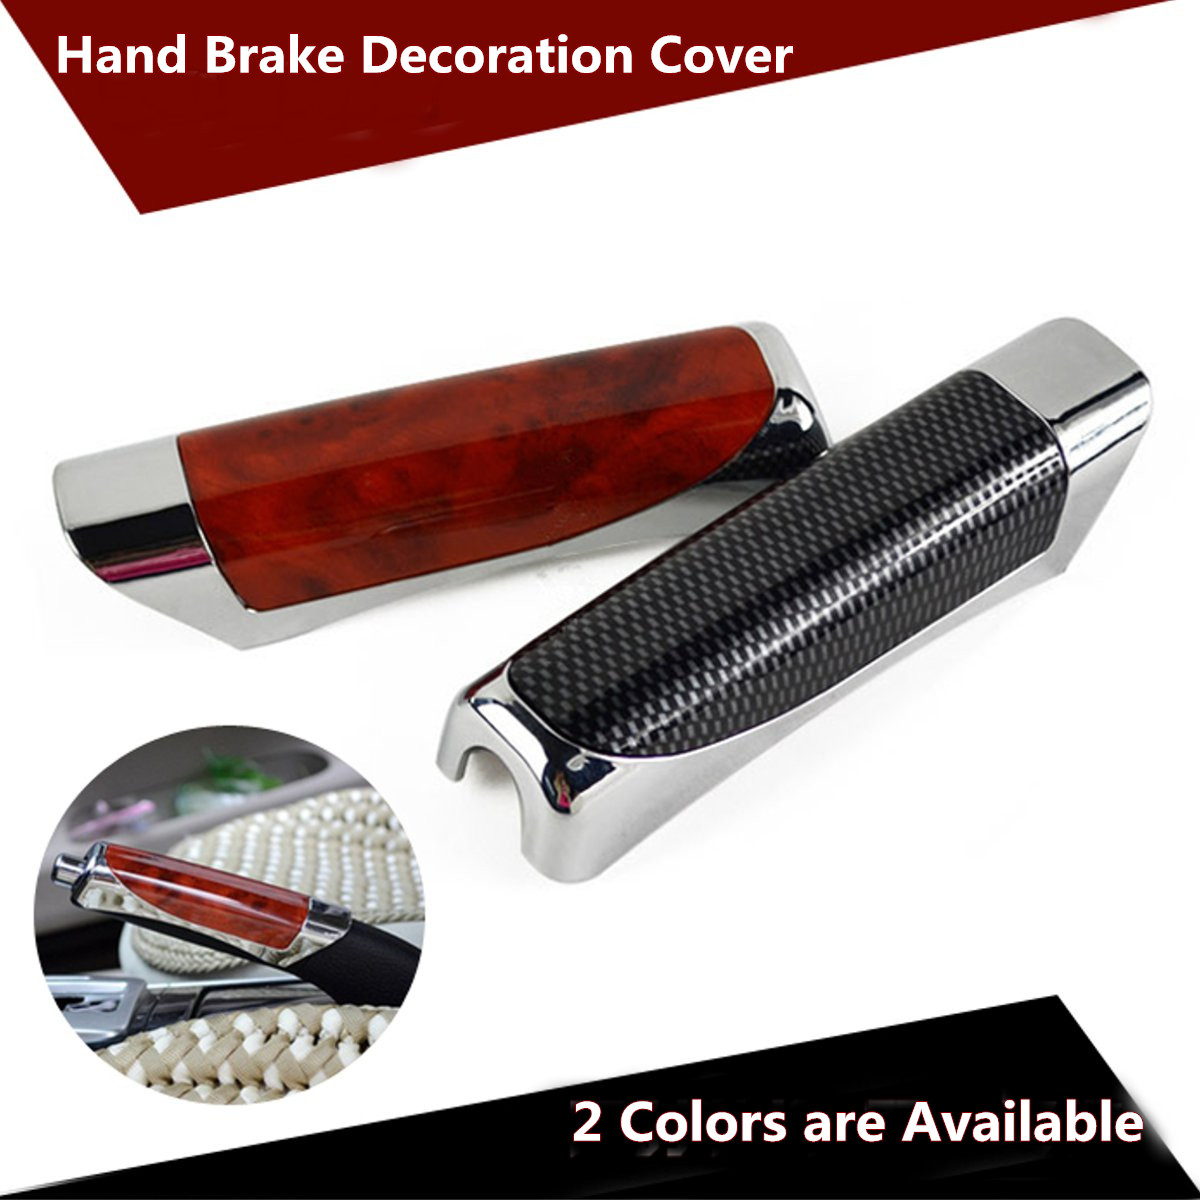 Universal Car Carbon Fiber Style Decoration Hand Brake Protector Cover Sleeve Case Car Accessory Black Red 12.5cm X 3.5cm